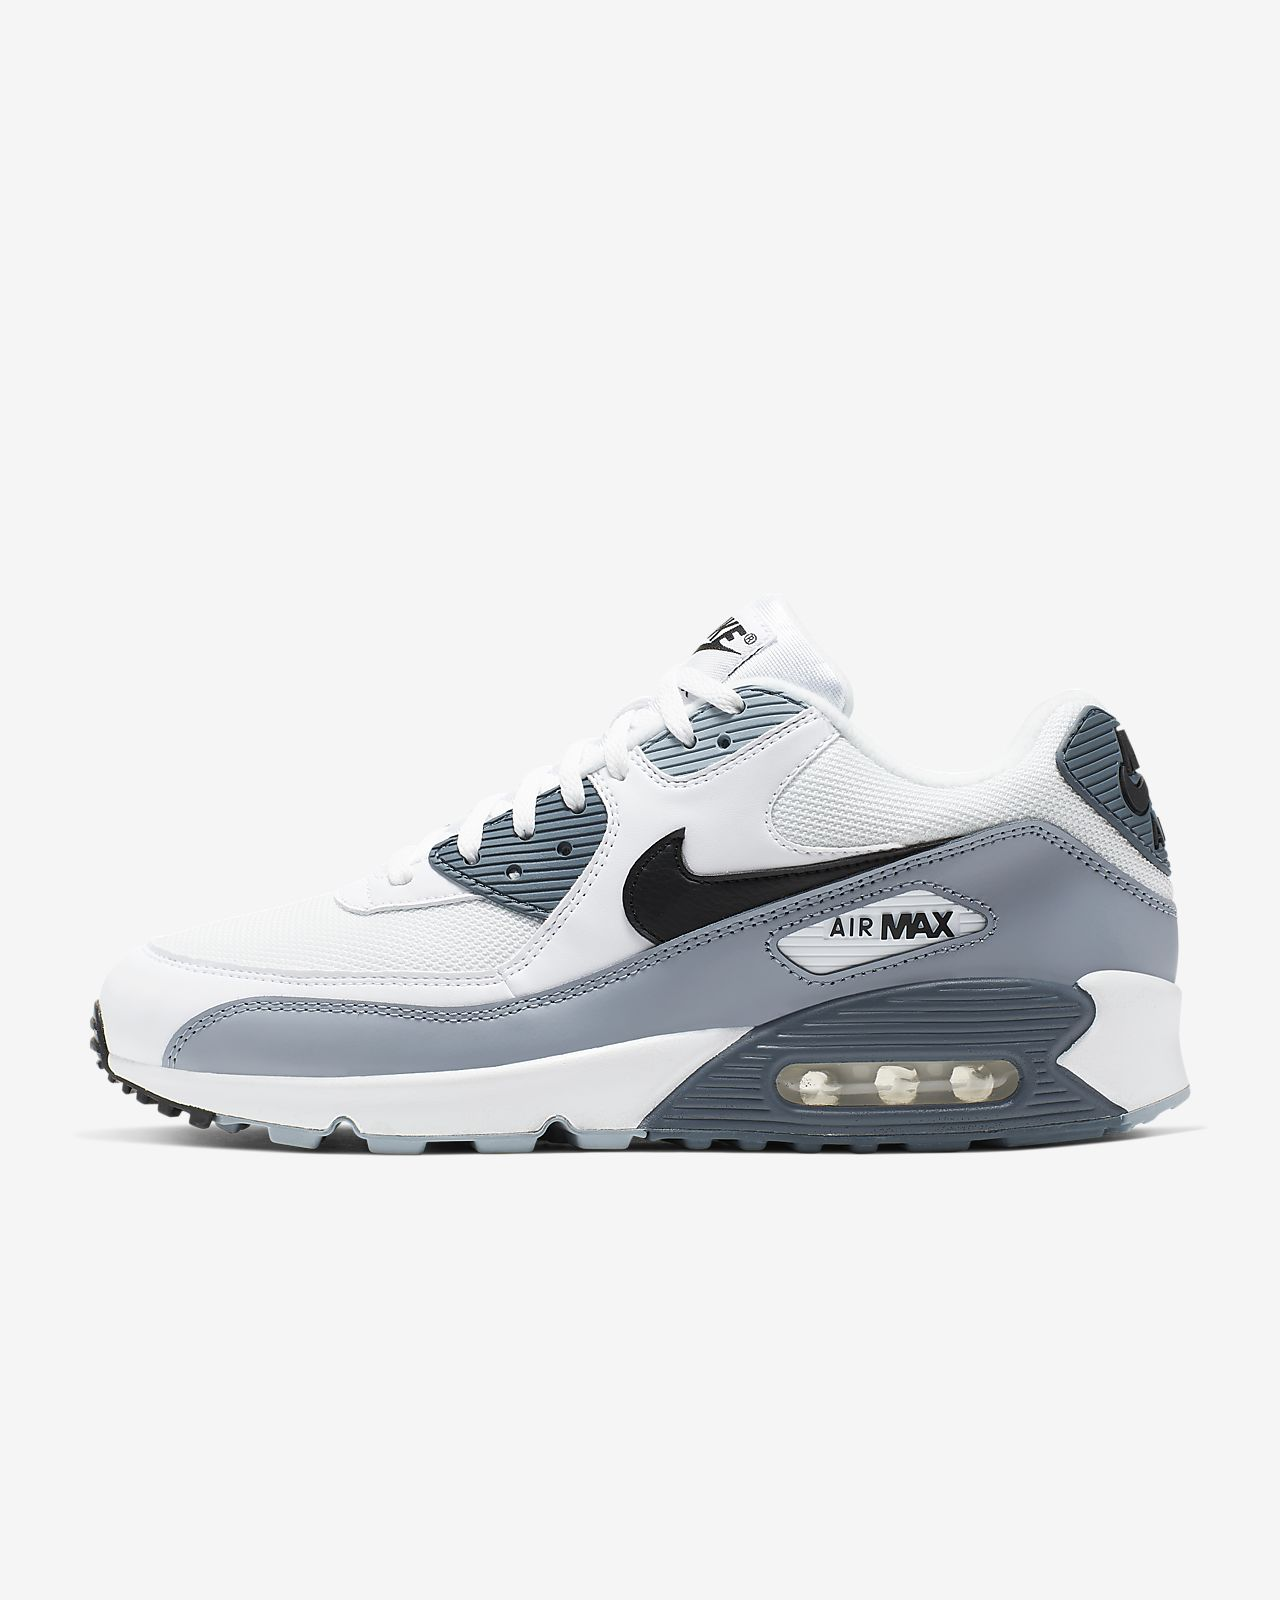 reputable site 41c8f d3e8c Nike Air Max 90 Essential